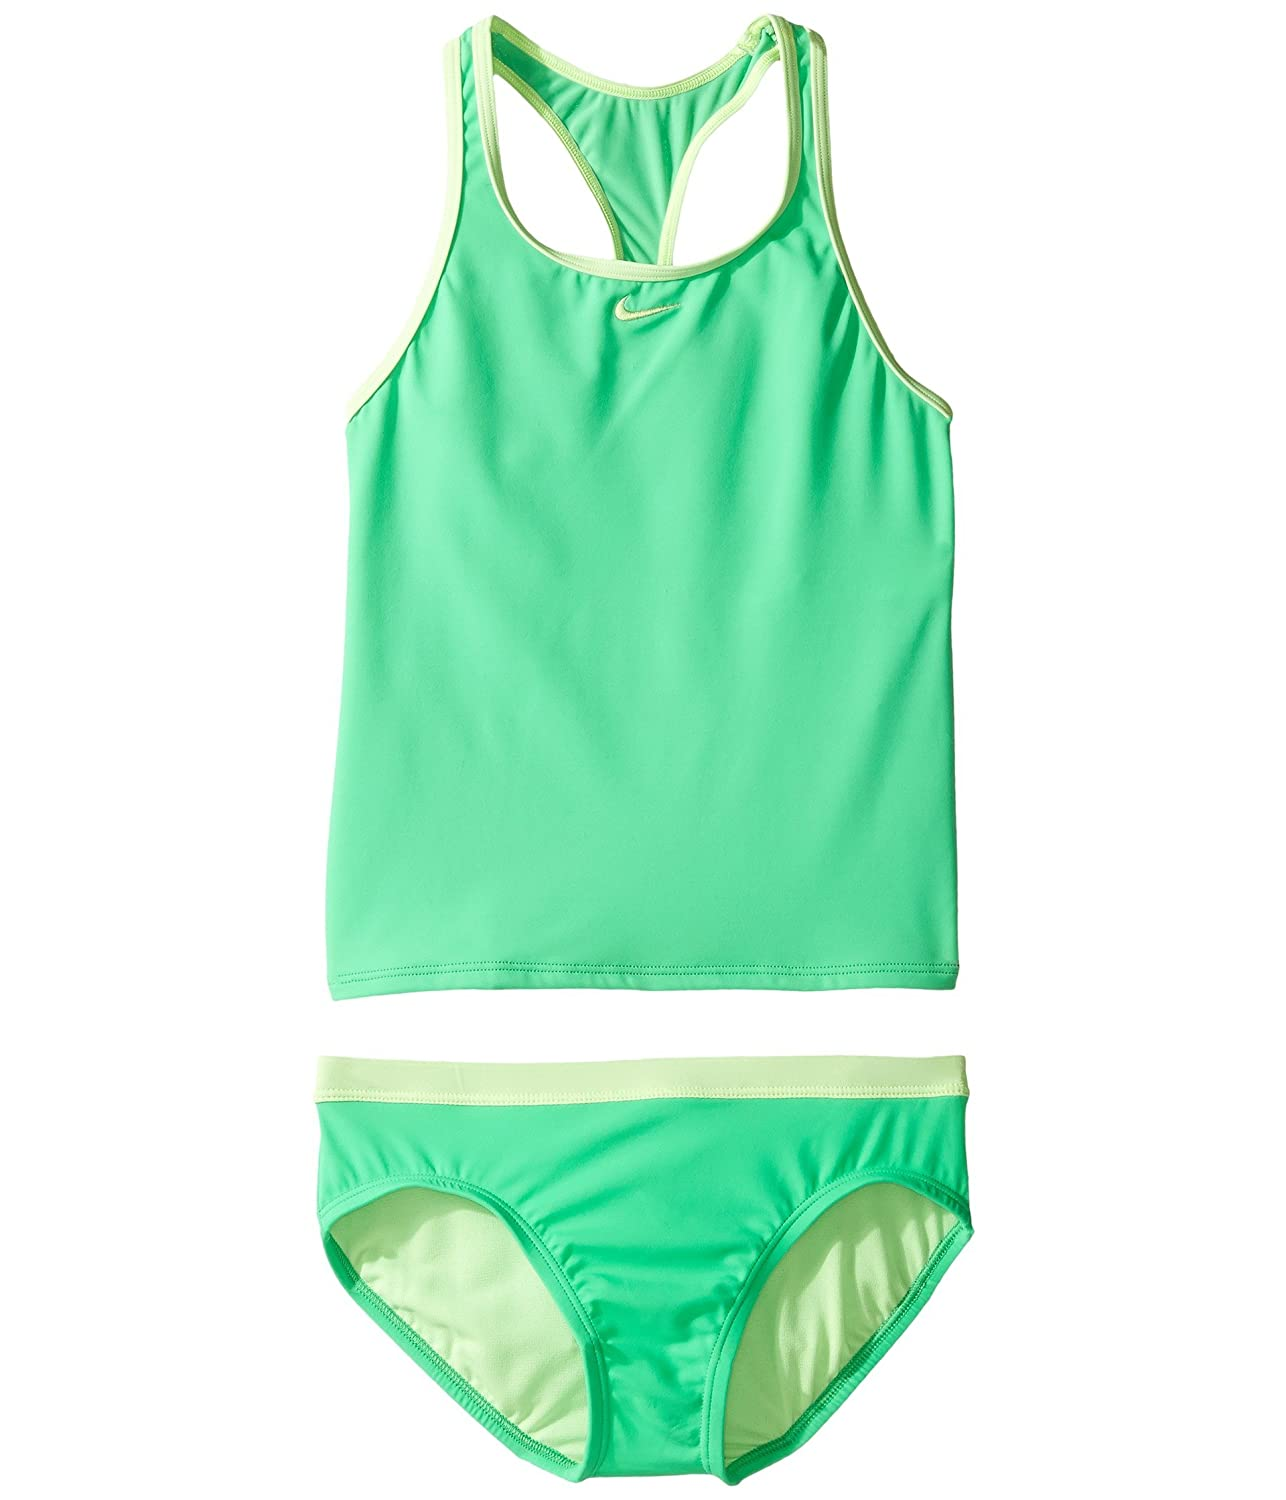 (ナイキ) NIKE ガール水着セパレートスウィムセット Core Solid Racerback Tankini (Big Kids) Electro Green 10 Big Kids (10歳) One Size B078PZQ2HB